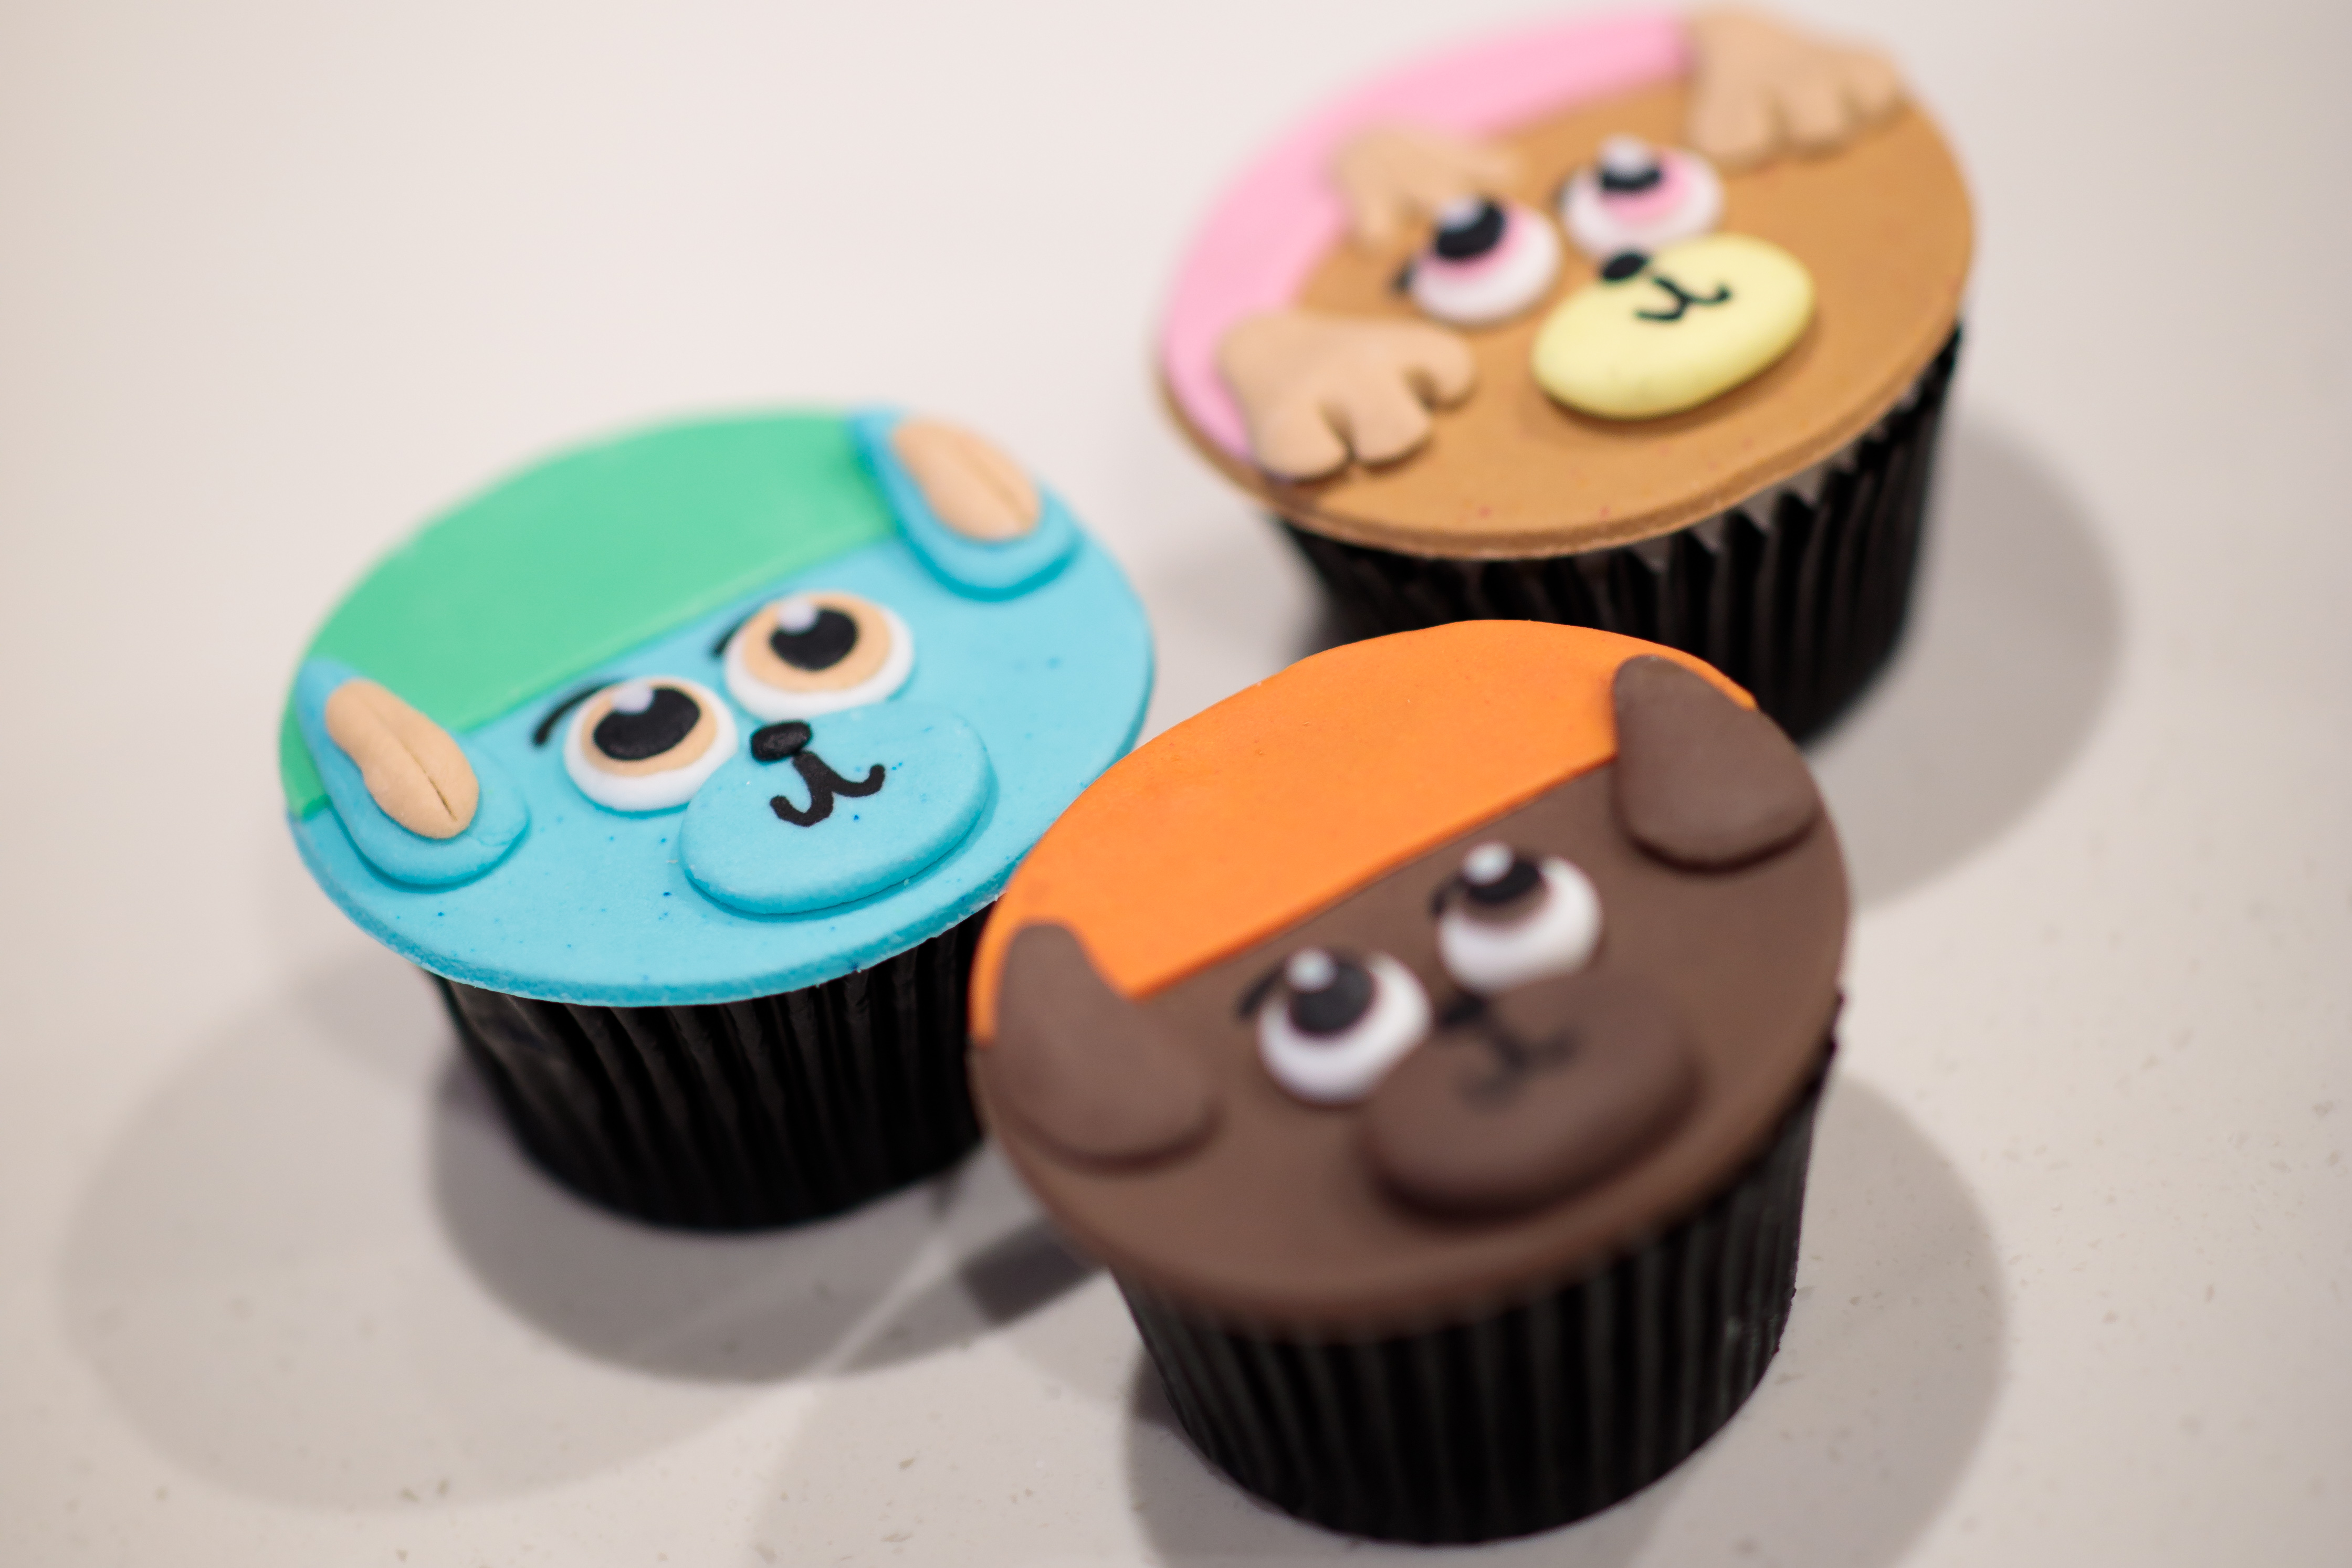 Cupcakes in the shape of Paw Patrol characters